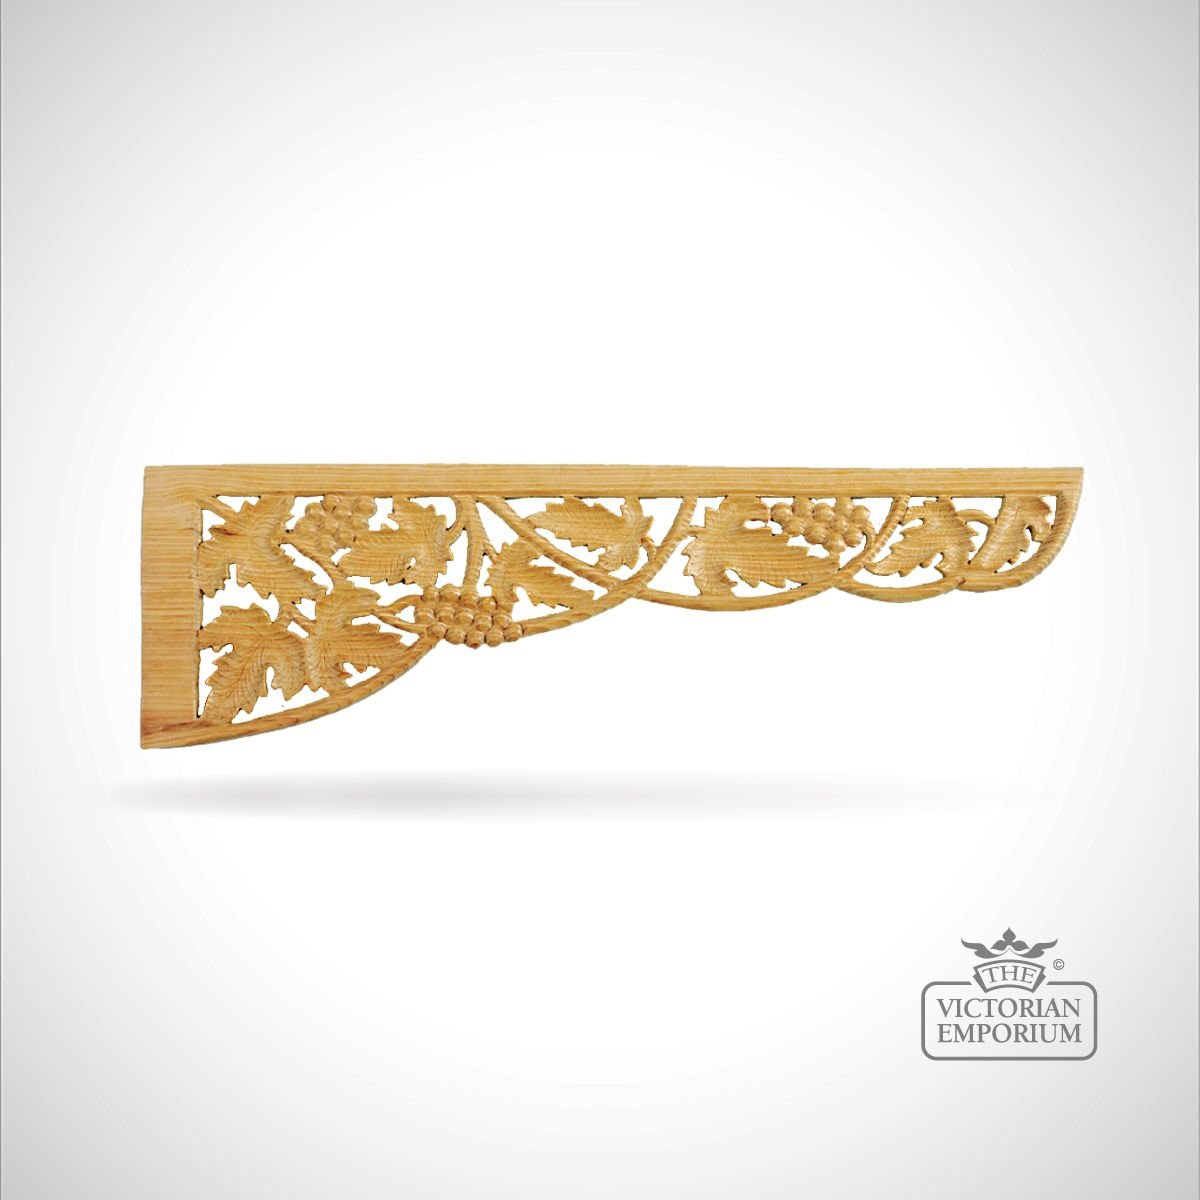 Large vineleaf spandrel decorative mouldings for Decor moulding